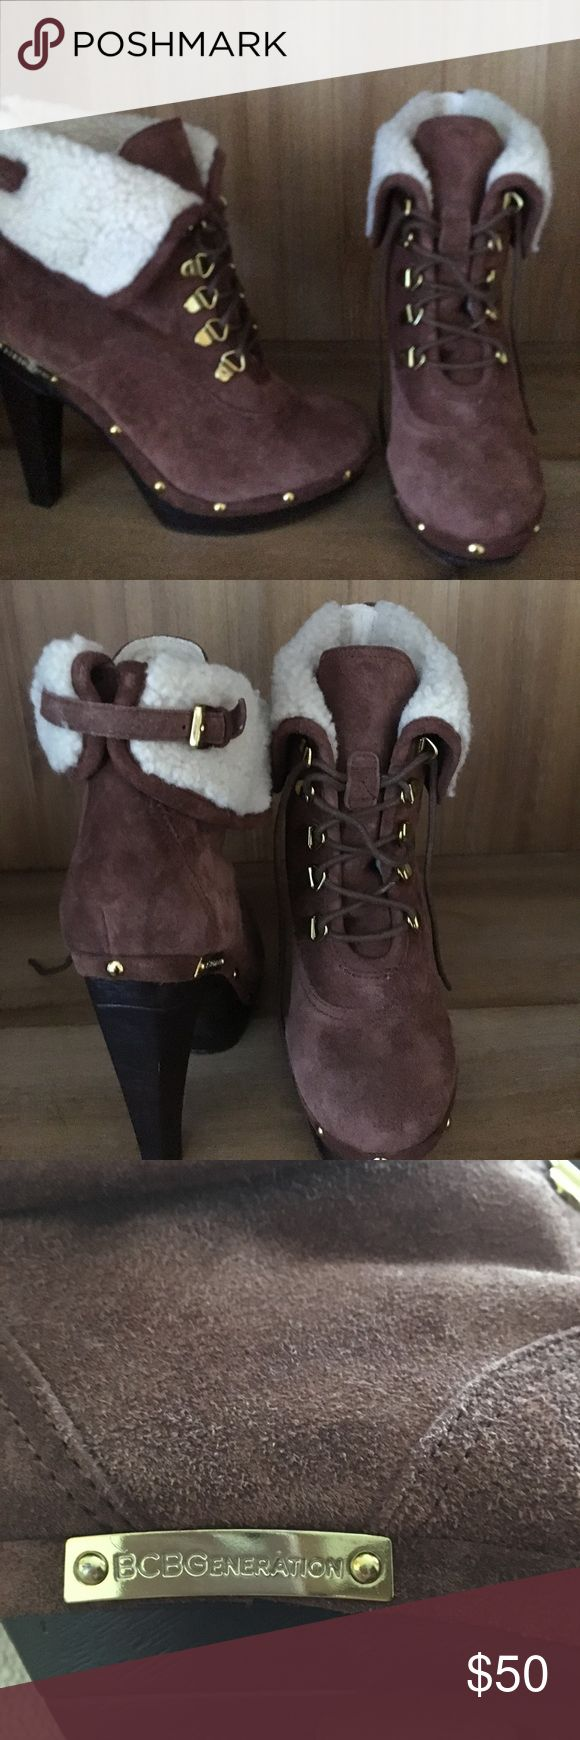 bcbgeneration faux fur ankle boots Tan suede and faux fur ankle boots. BCBGeneration Shoes Ankle Boots & Booties